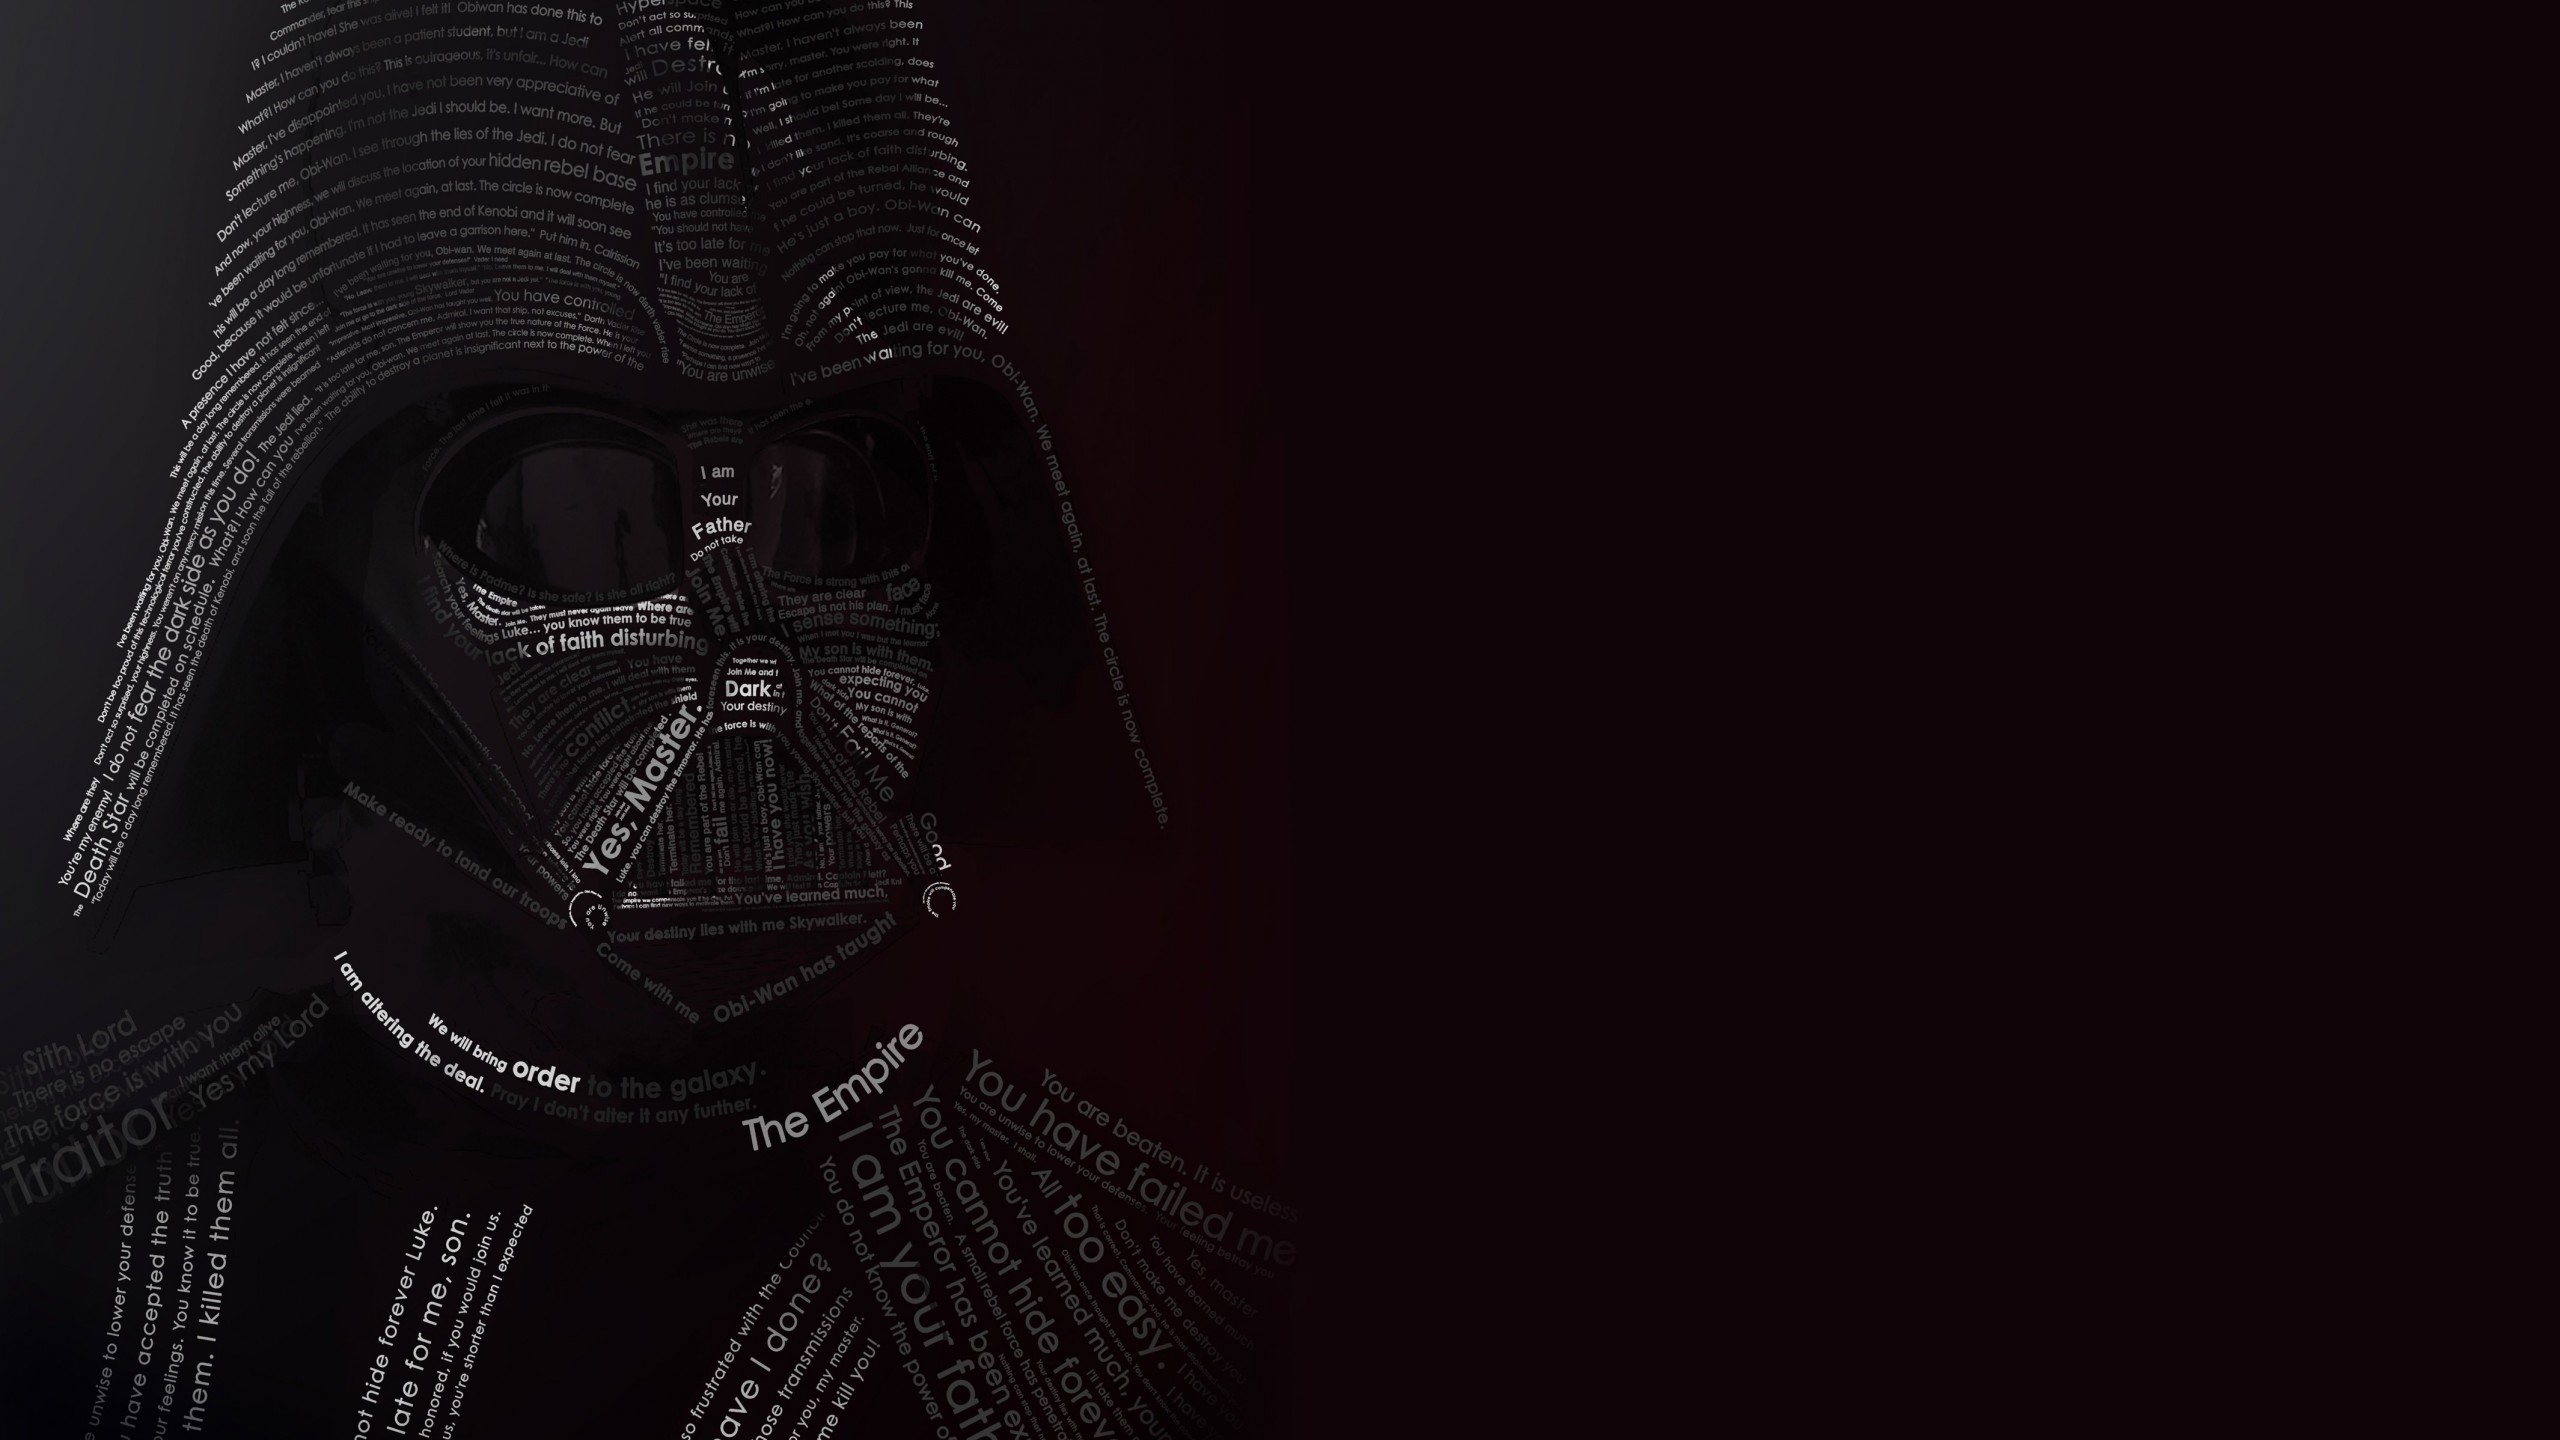 Darth Vader Typographic Portrait Wallpaper for Social Media YouTube Channel Art